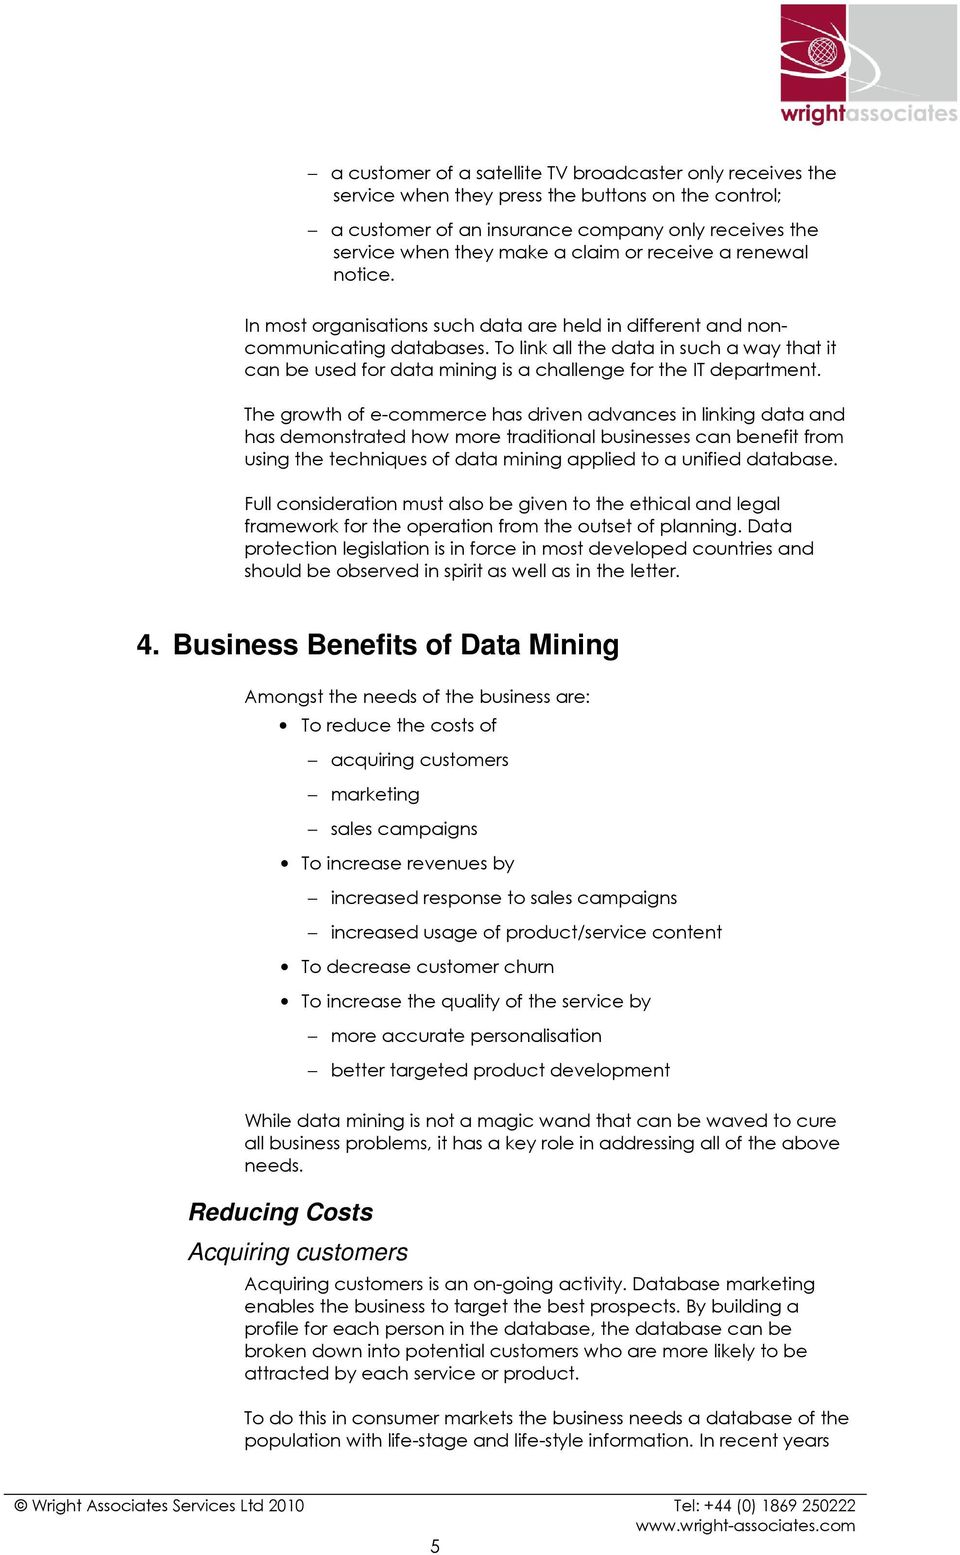 To link all the data in such a way that it can be used for data mining is a challenge for the IT department.